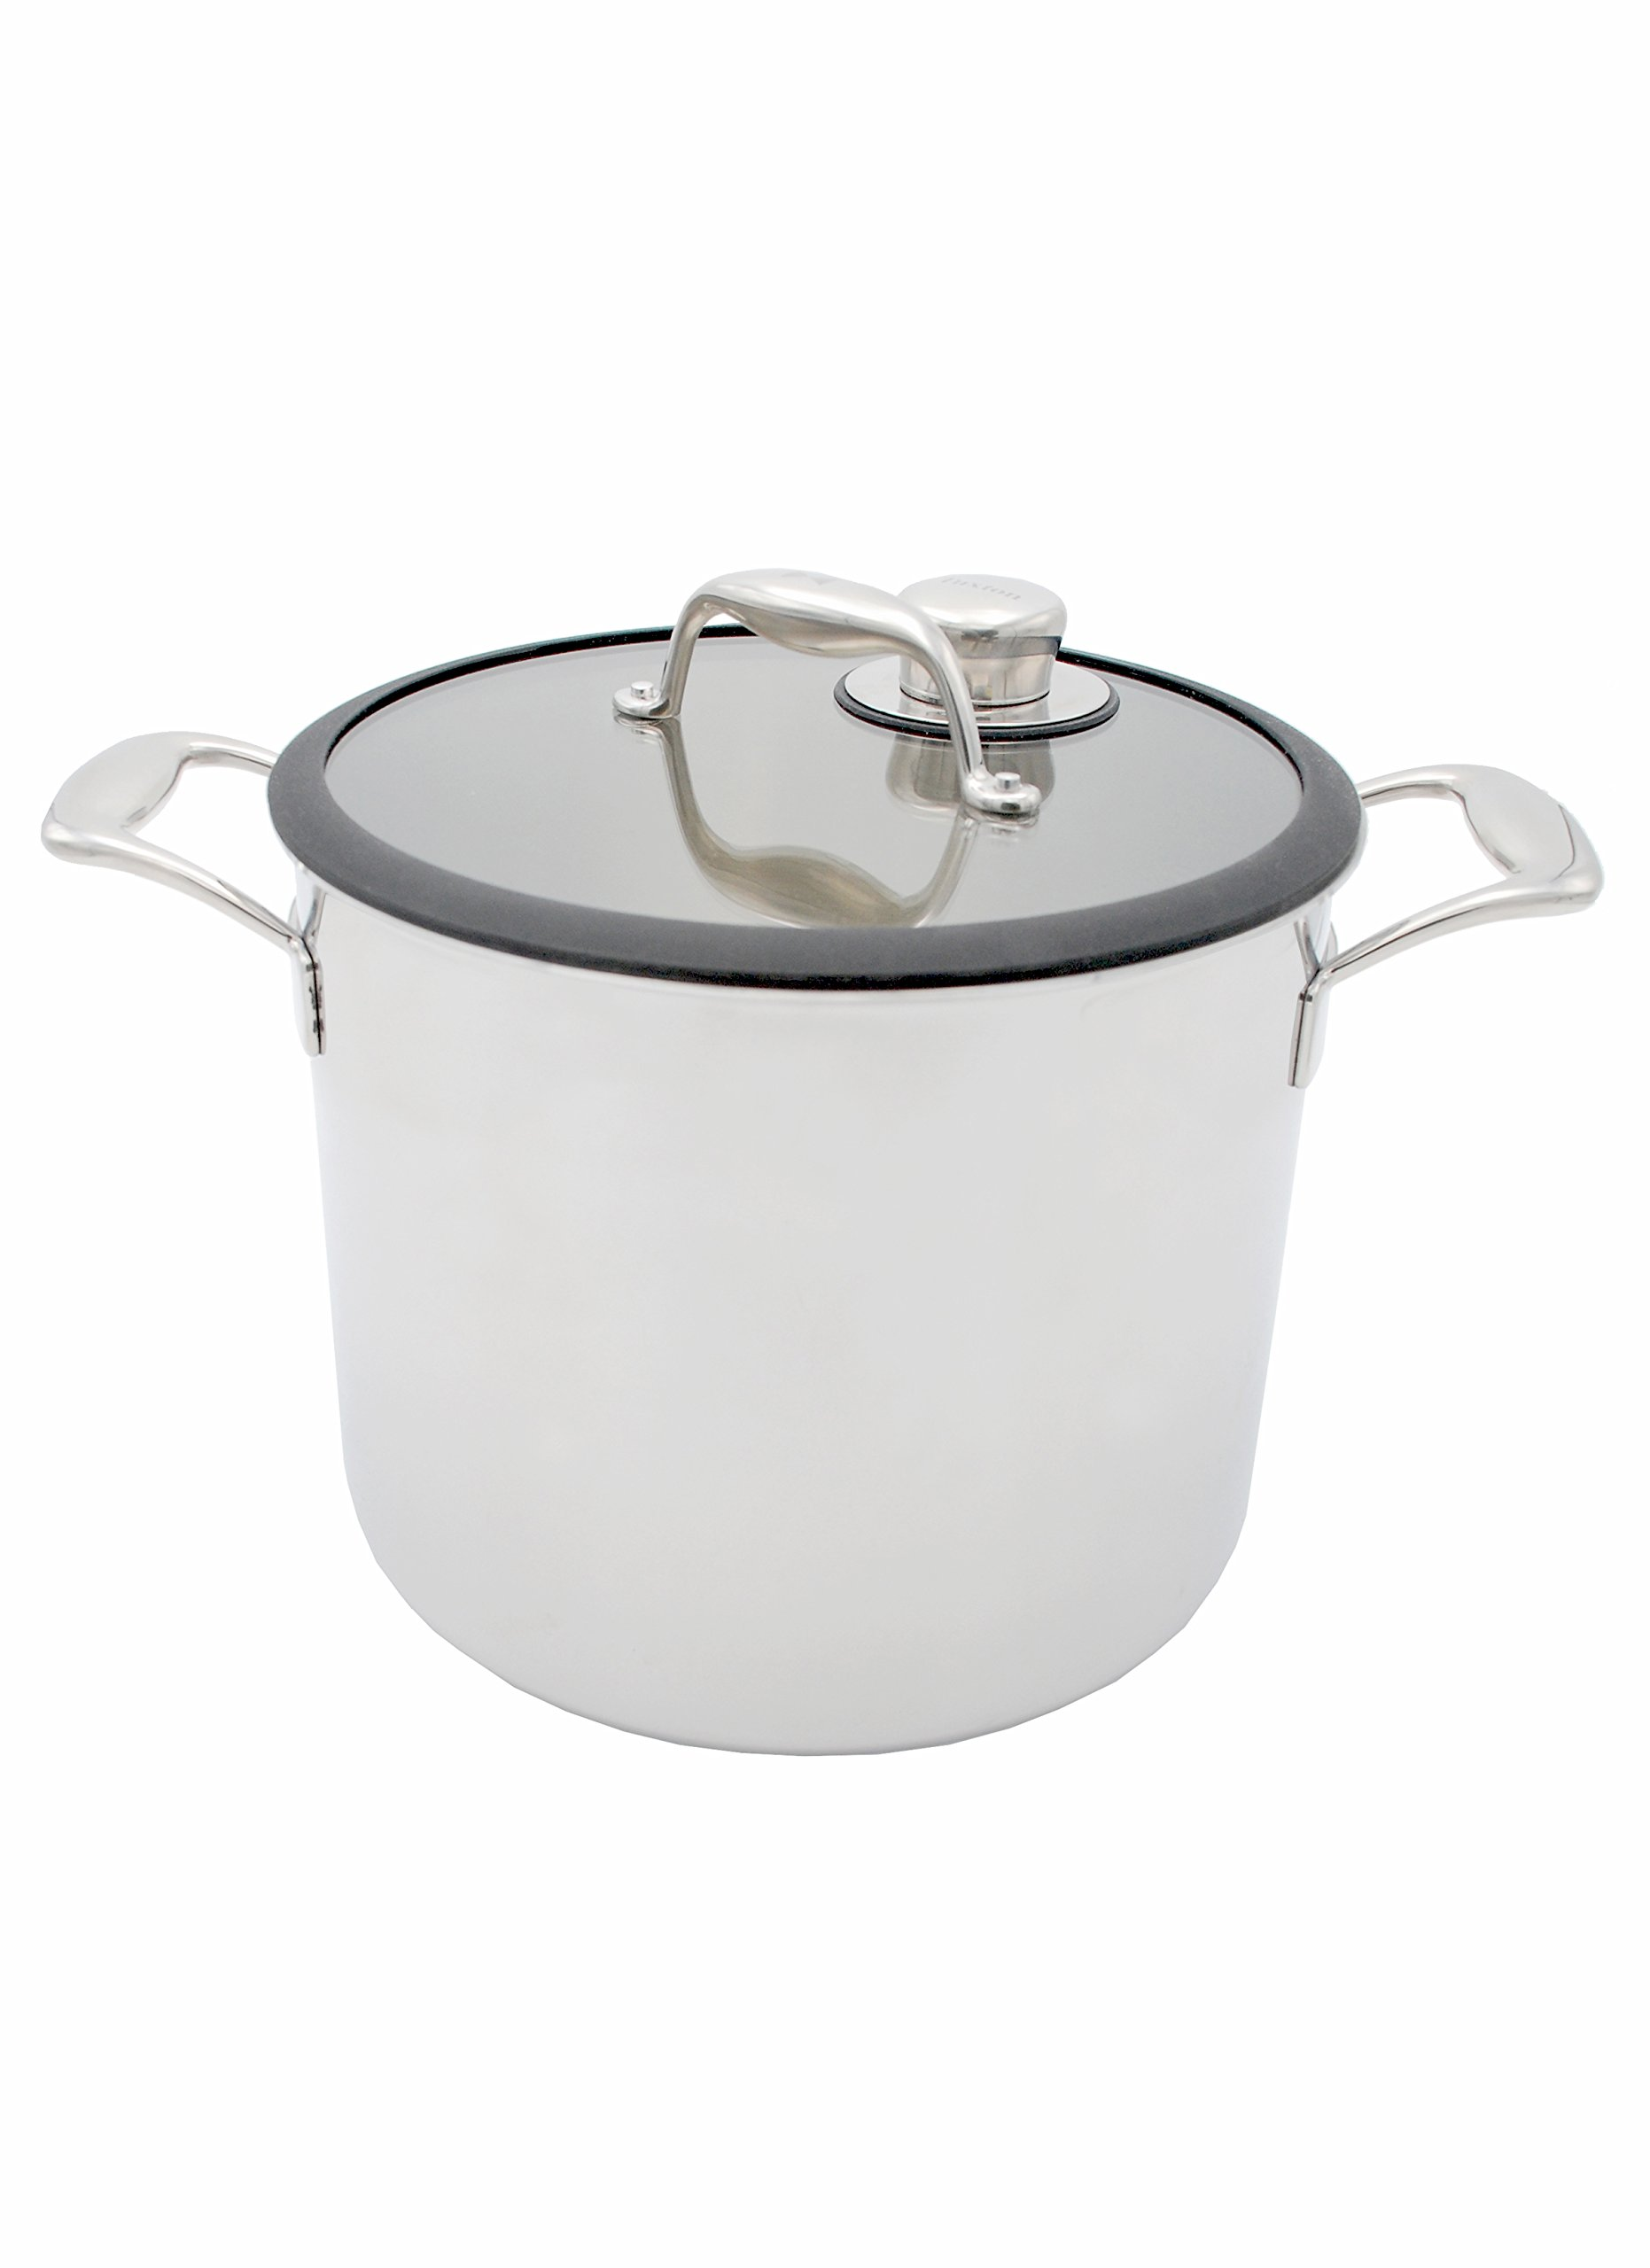 Tuxton Home THBCZ3-SS9-G Chef Series Sous Vide Pot Specialty Stockpot, 9.8 quart, Stainless steel by Tuxton Home (Image #3)